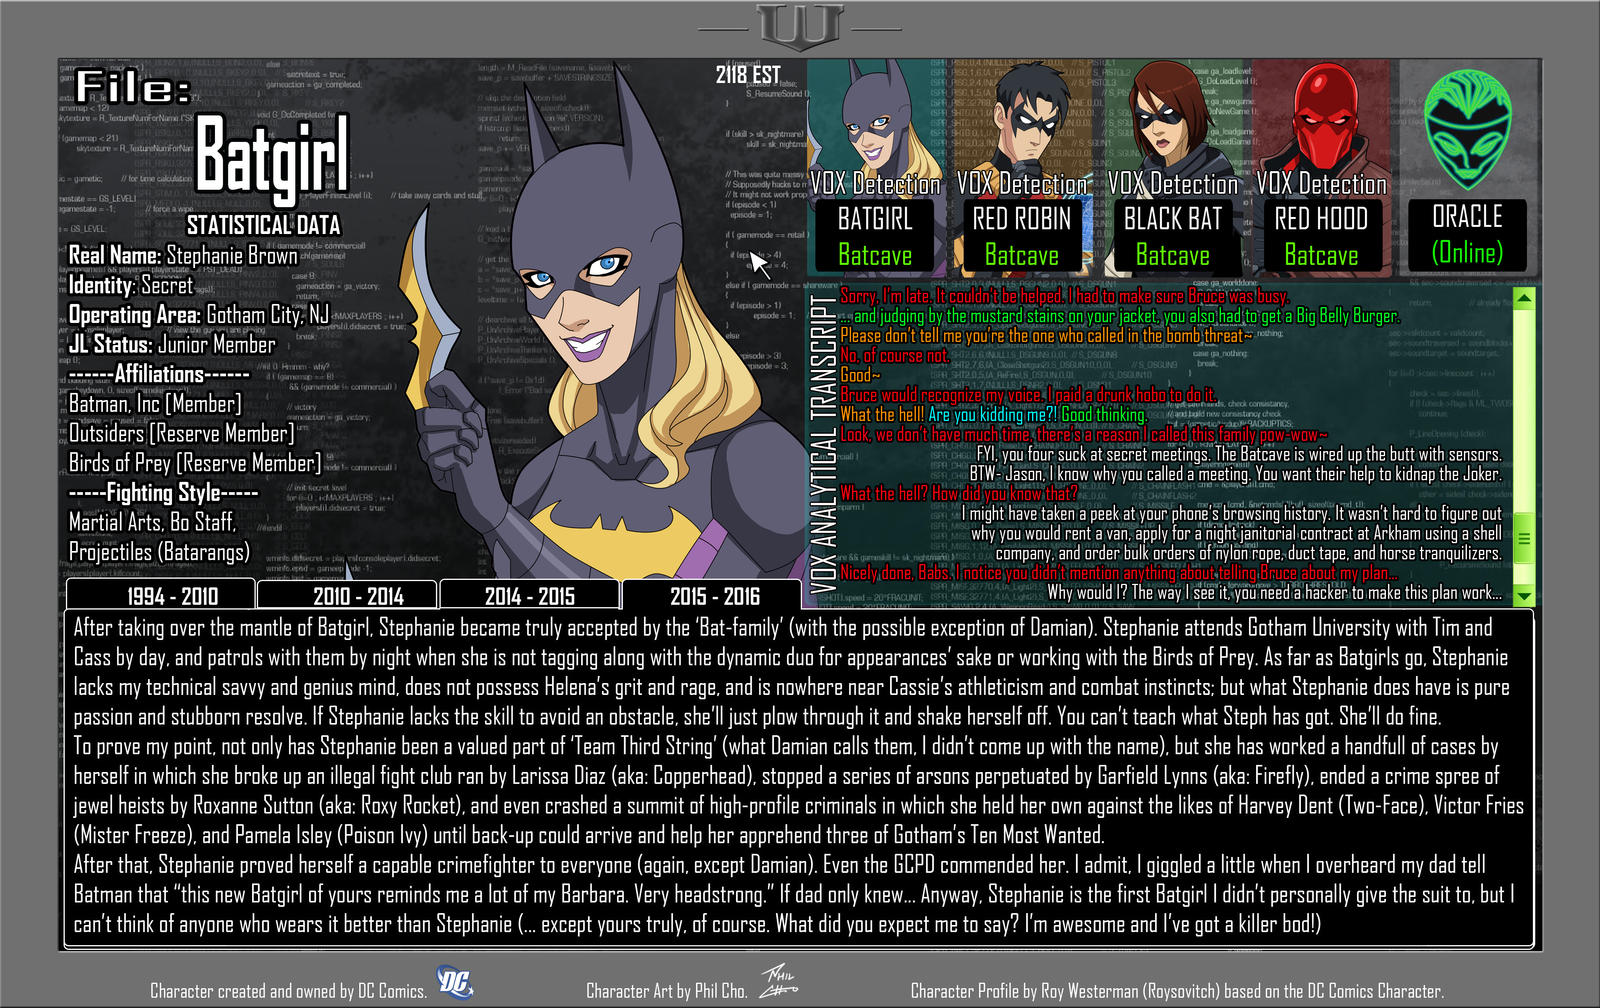 Oracle Files - Stephanie Brown 2015-2016